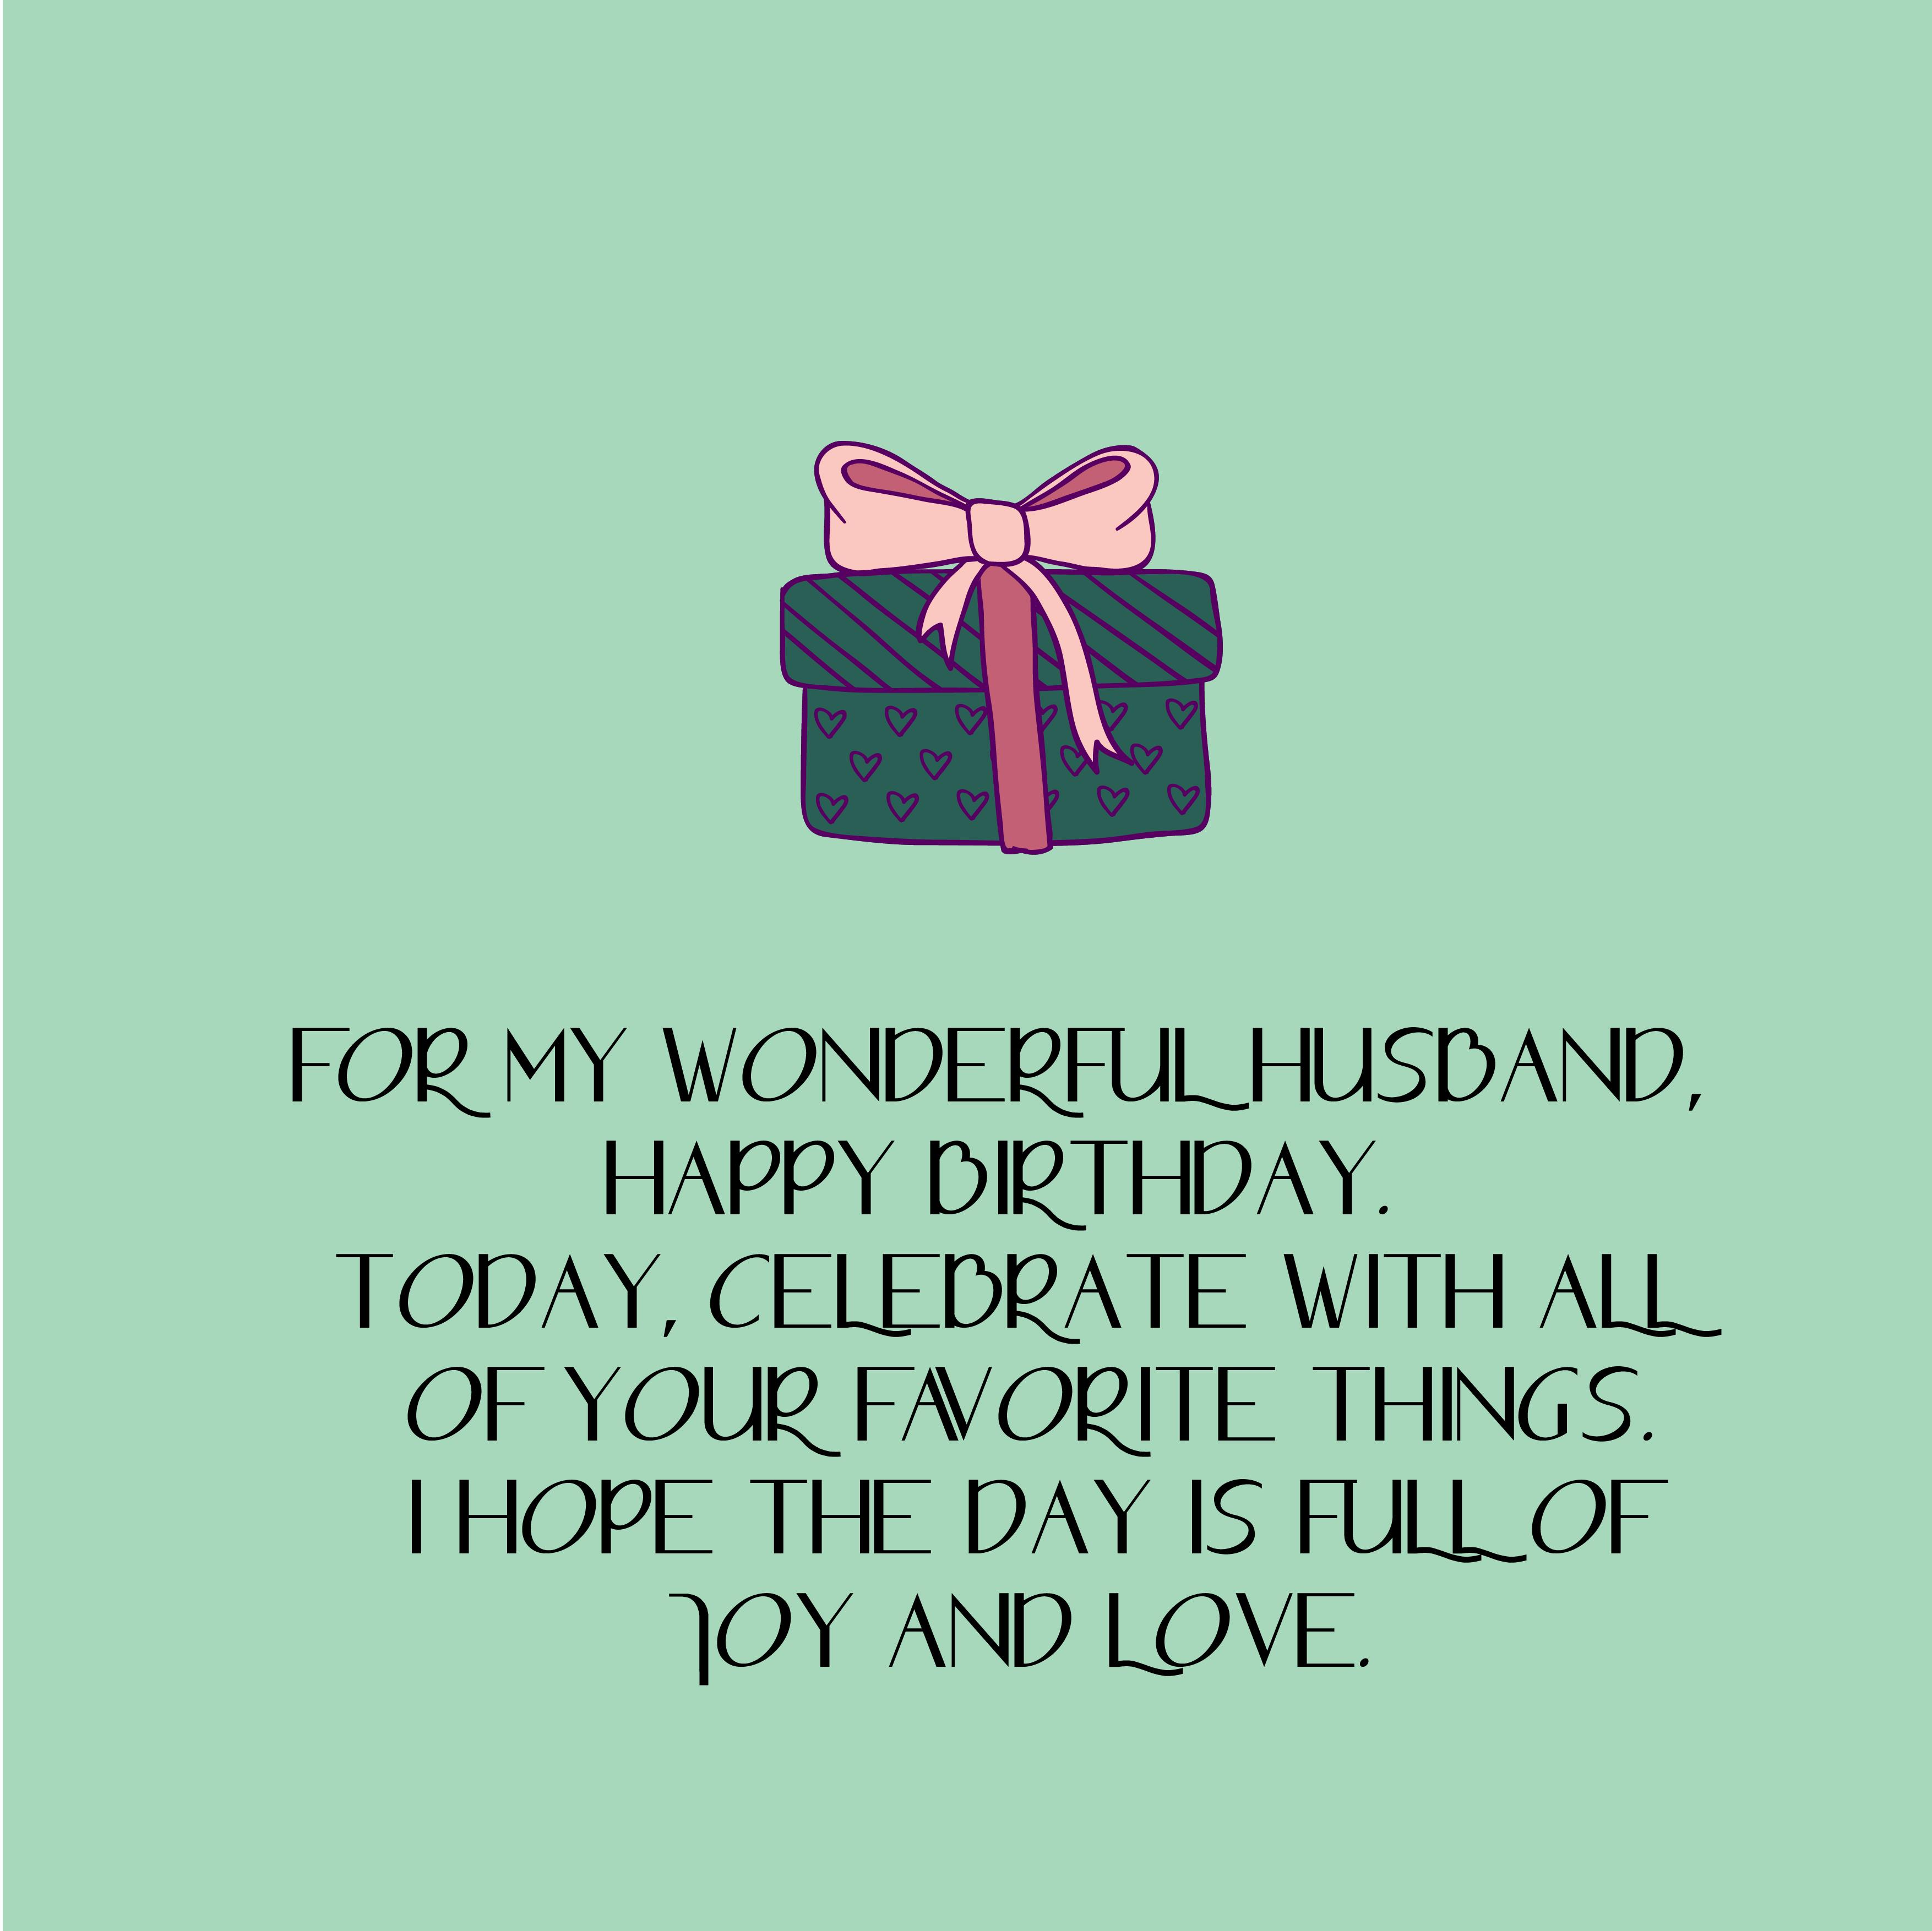 birthday-wishes-for-husband-04